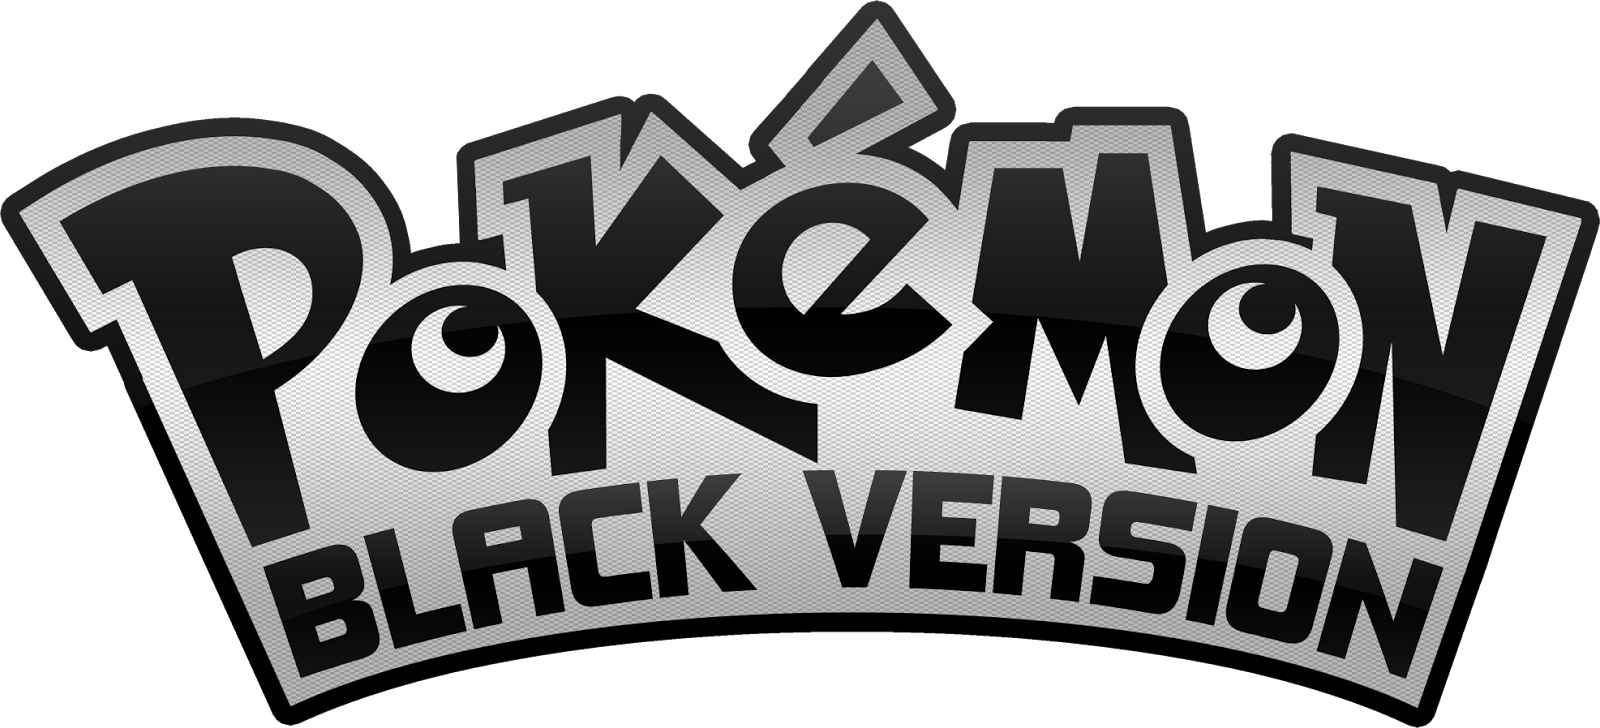 http://1.bp.blogspot.com/-nf6PrIcKWdM/ThMpwC_LhCI/AAAAAAAAAGo/oeJJC86LRAc/s1600/Pokemon_Black_Version_Logo_by_Nalty.png